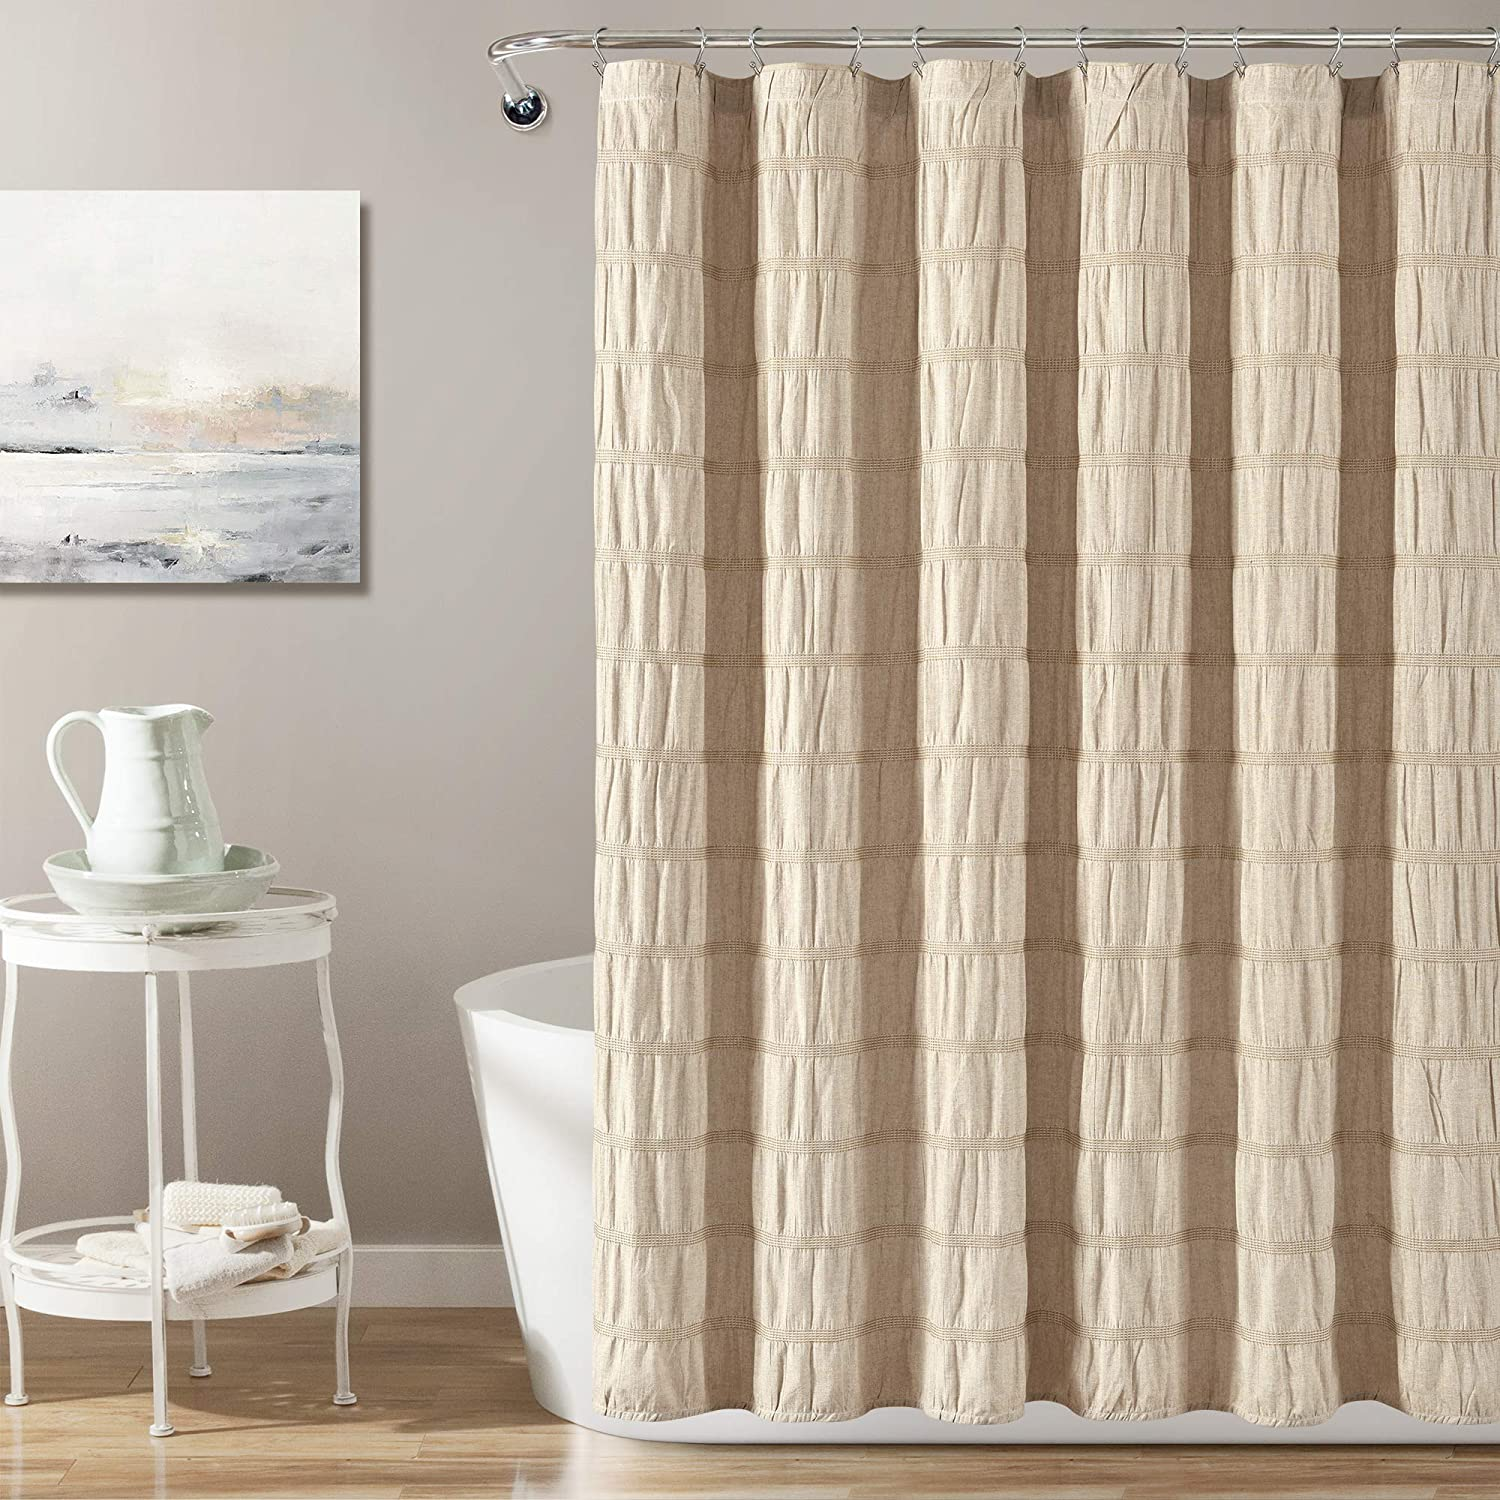 "Lush Decor Taupe Waffle Stripe Woven Cotton Shower Curtain, Bathroom Accessories (72"" x 72"")"